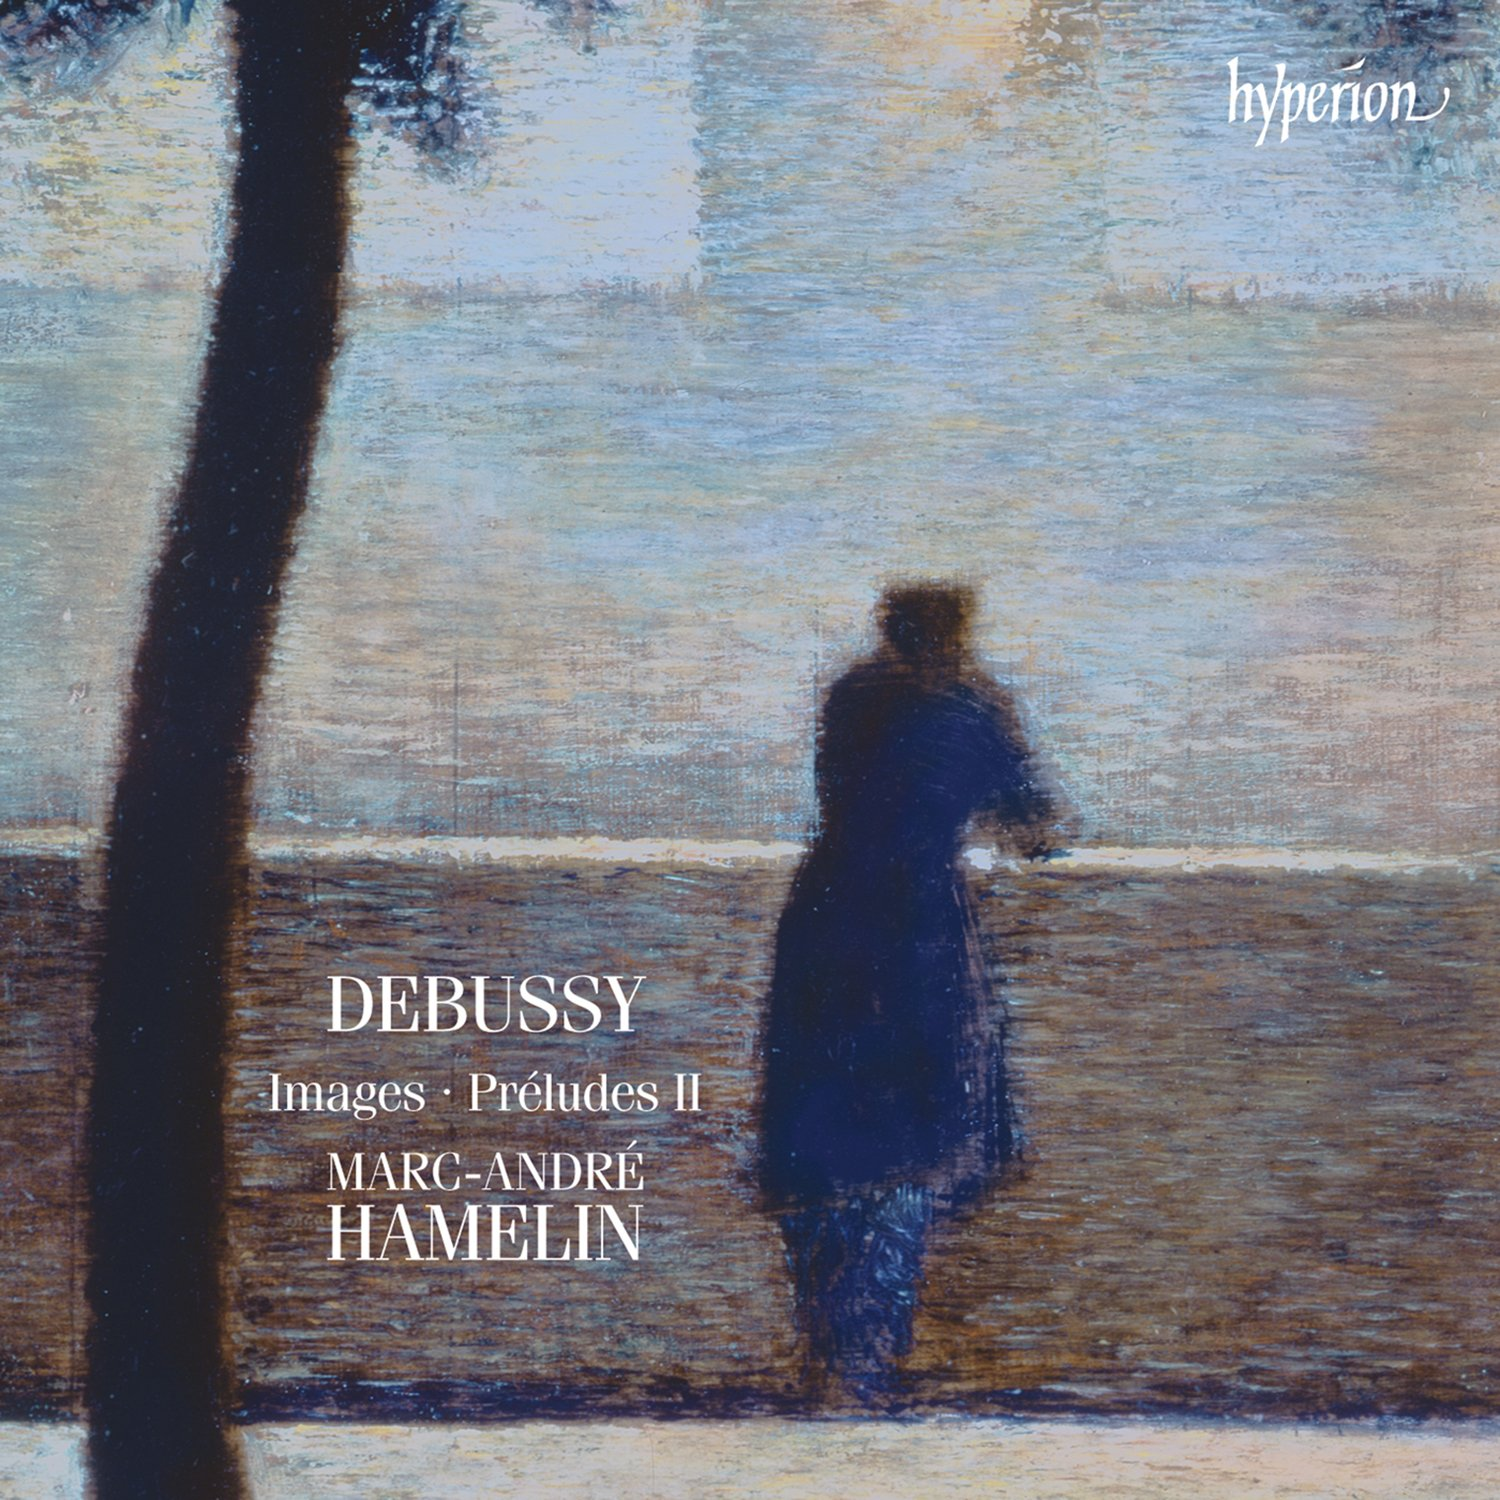 Debussy - Oeuvres pour piano - Page 7 81RoH6eEkBL._SL1500_